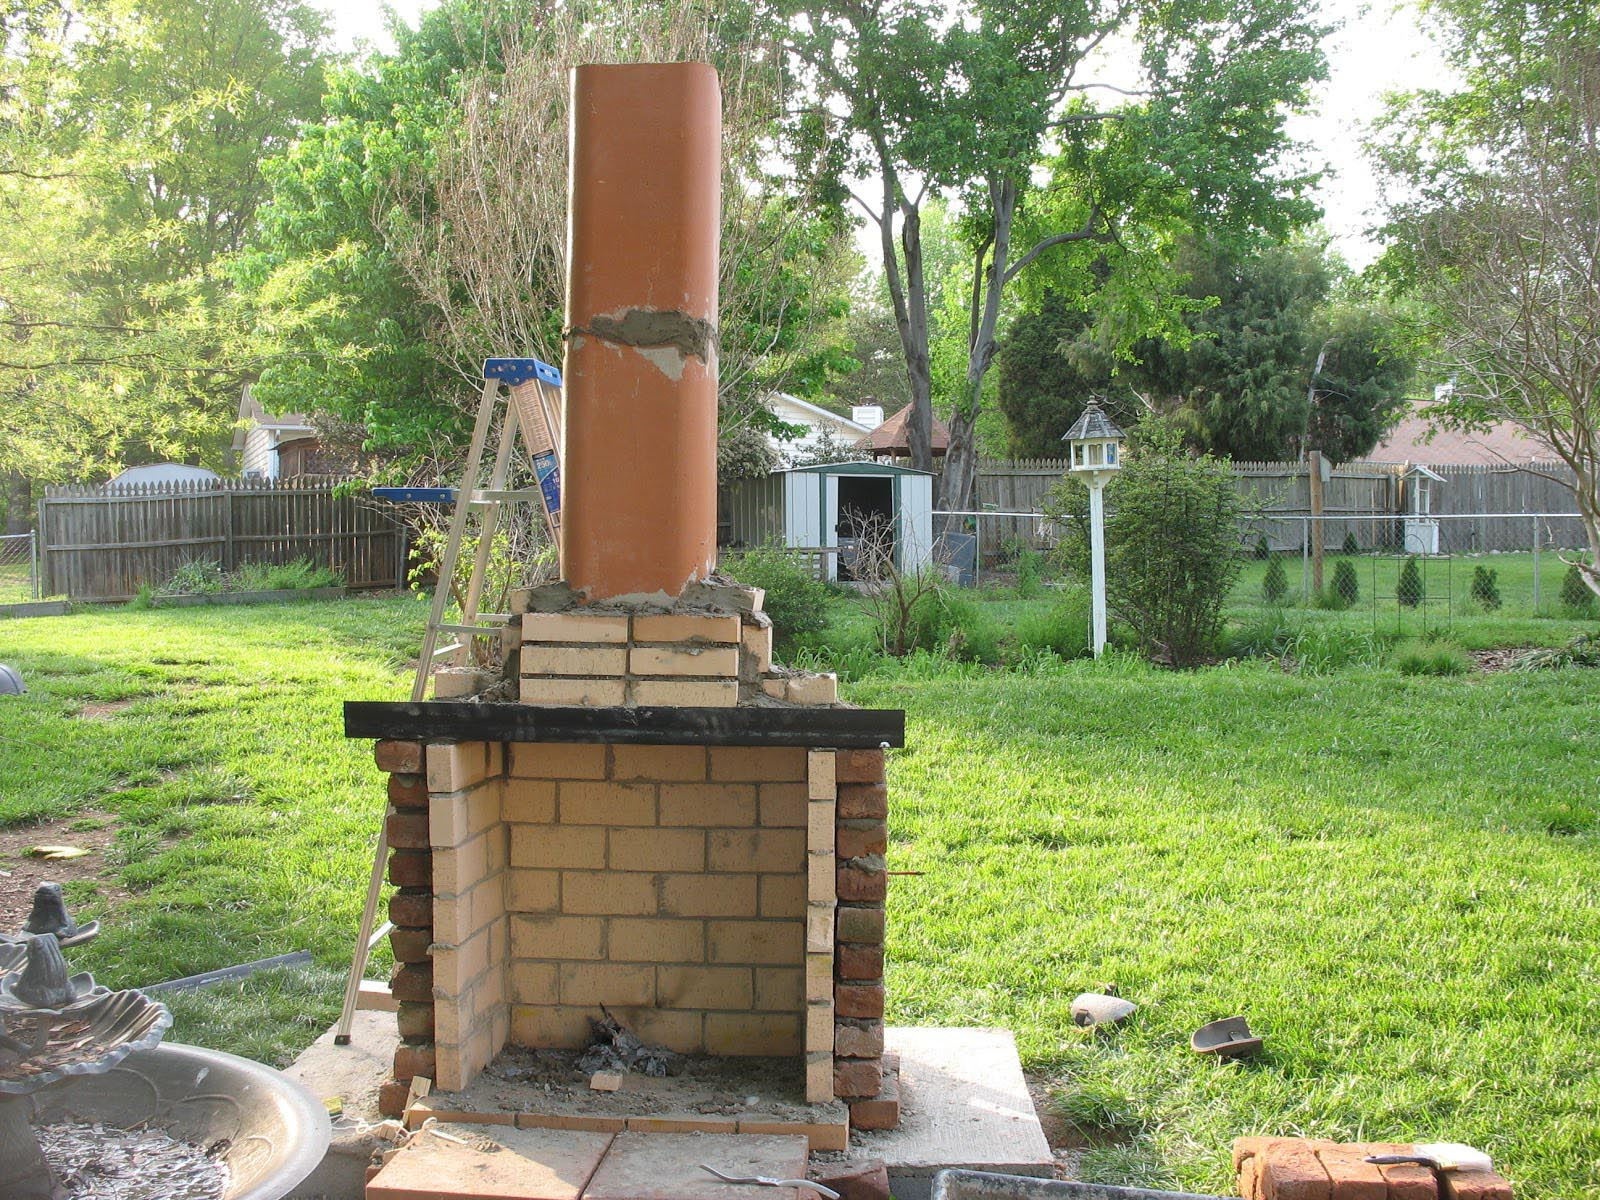 Backyard Fireplace Diy : Diy Outdoor Fireplace Creative Outdoor Fireplace Plans DIY